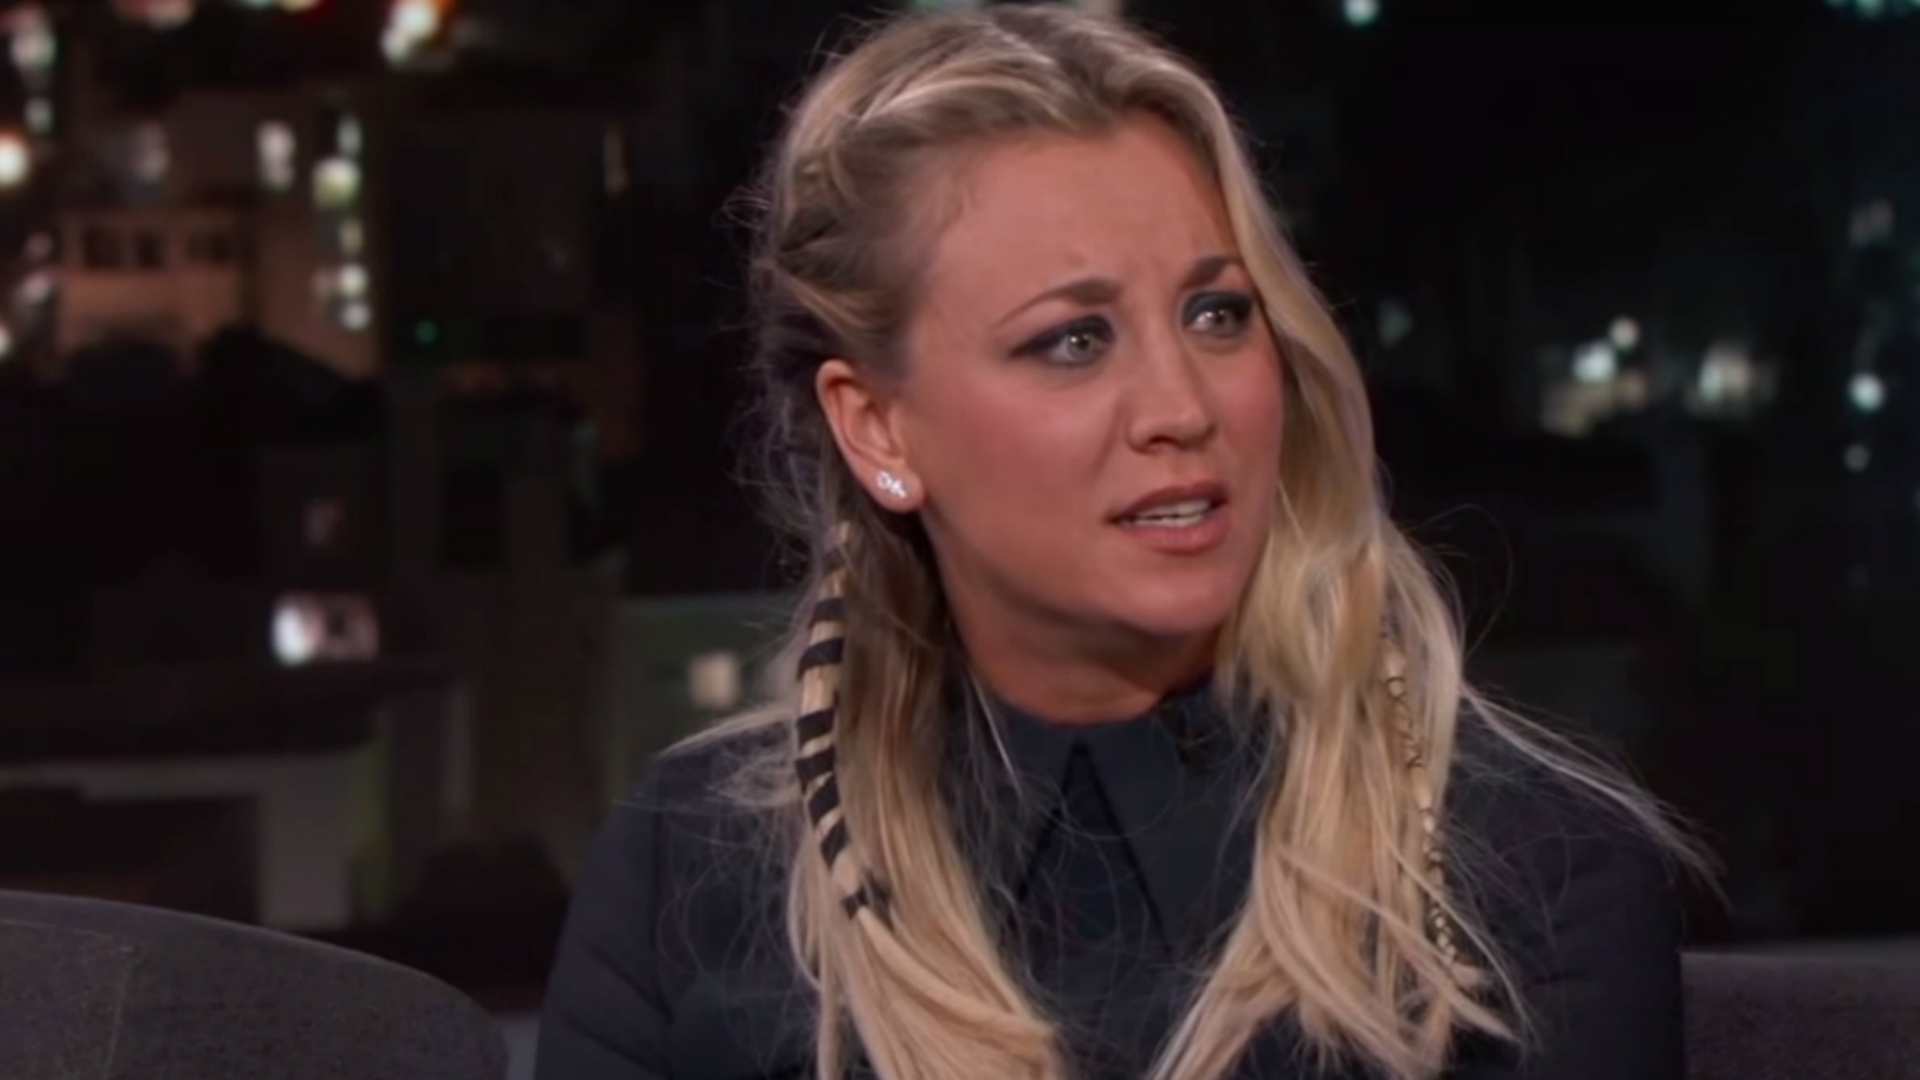 Big Bang Theory star Kaley Cuoco on Jimmy Kimmel